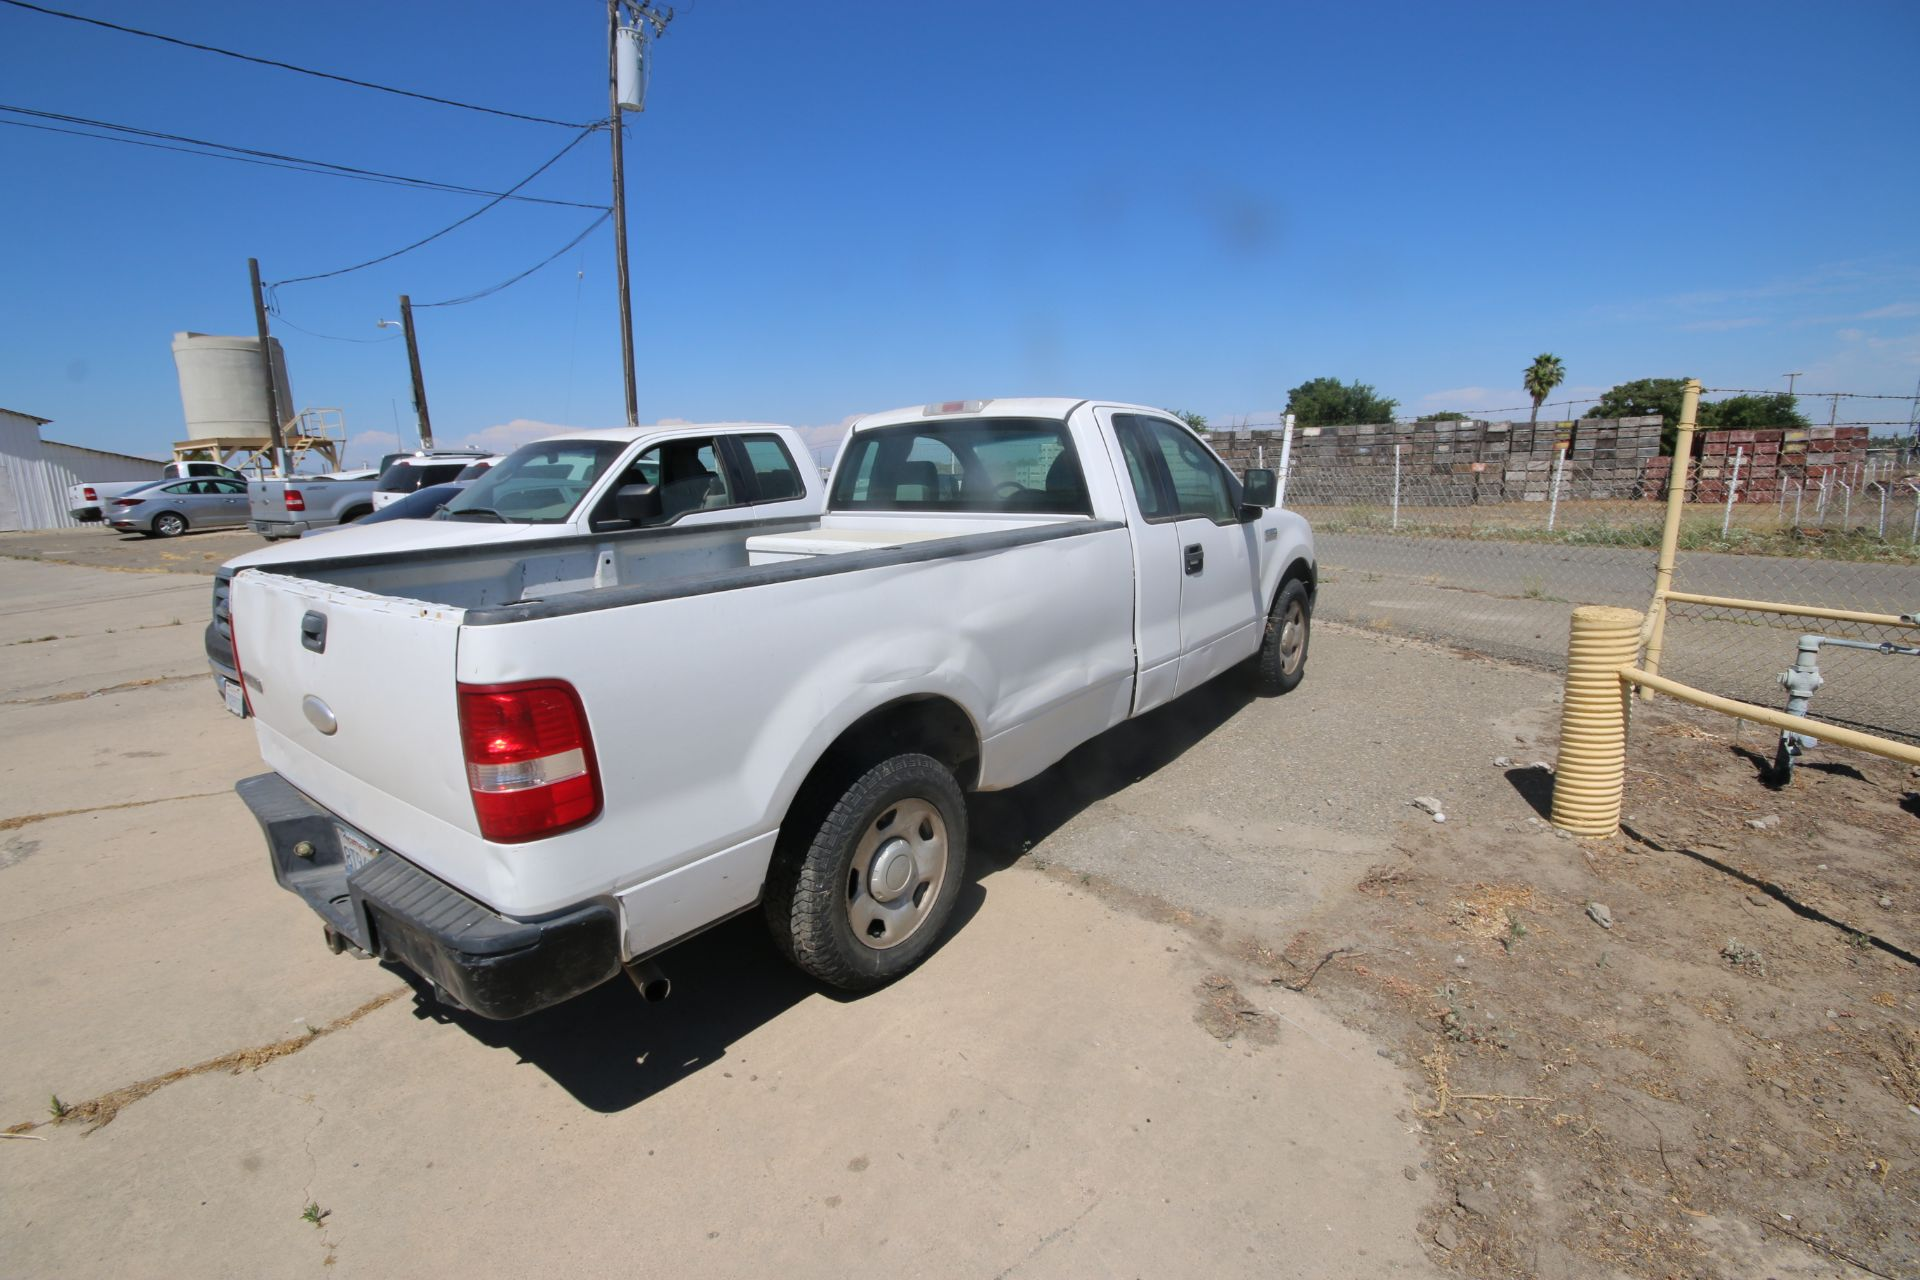 2006 Ford F150 L/B Pick Up Truck, VIN #: 1FTRF12256NA38863, with 167,638 Miles, Started Up as of - Image 3 of 18